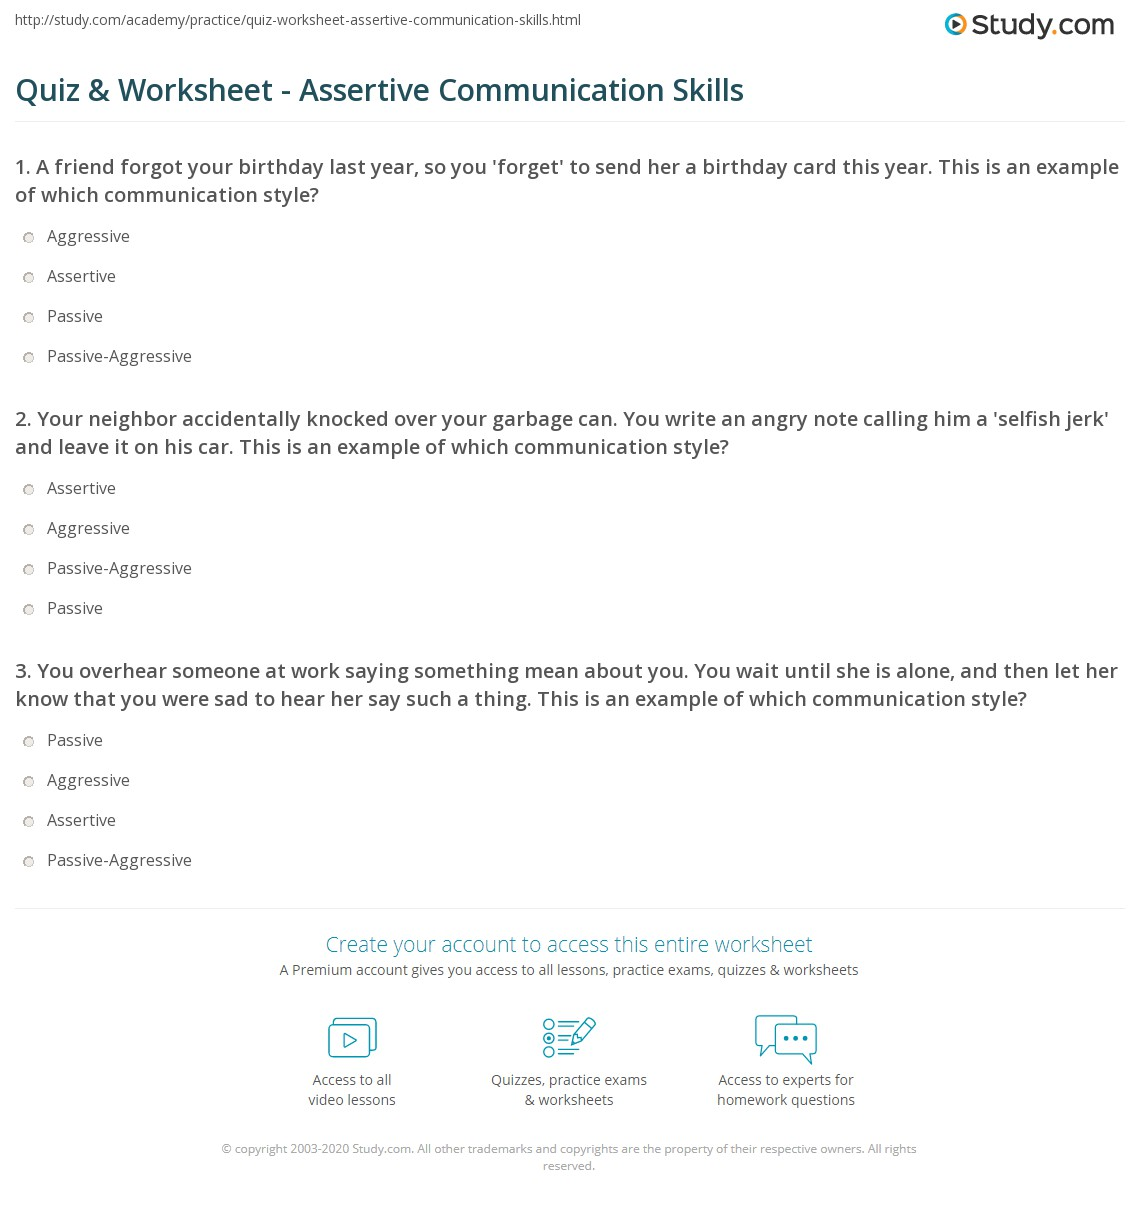 Printables Assertiveness Training Worksheets quiz worksheet assertive communication skills study com 1 your neighbor accidentally knocked over garbage can you write an angry note calling him a selfish jerk and leave it